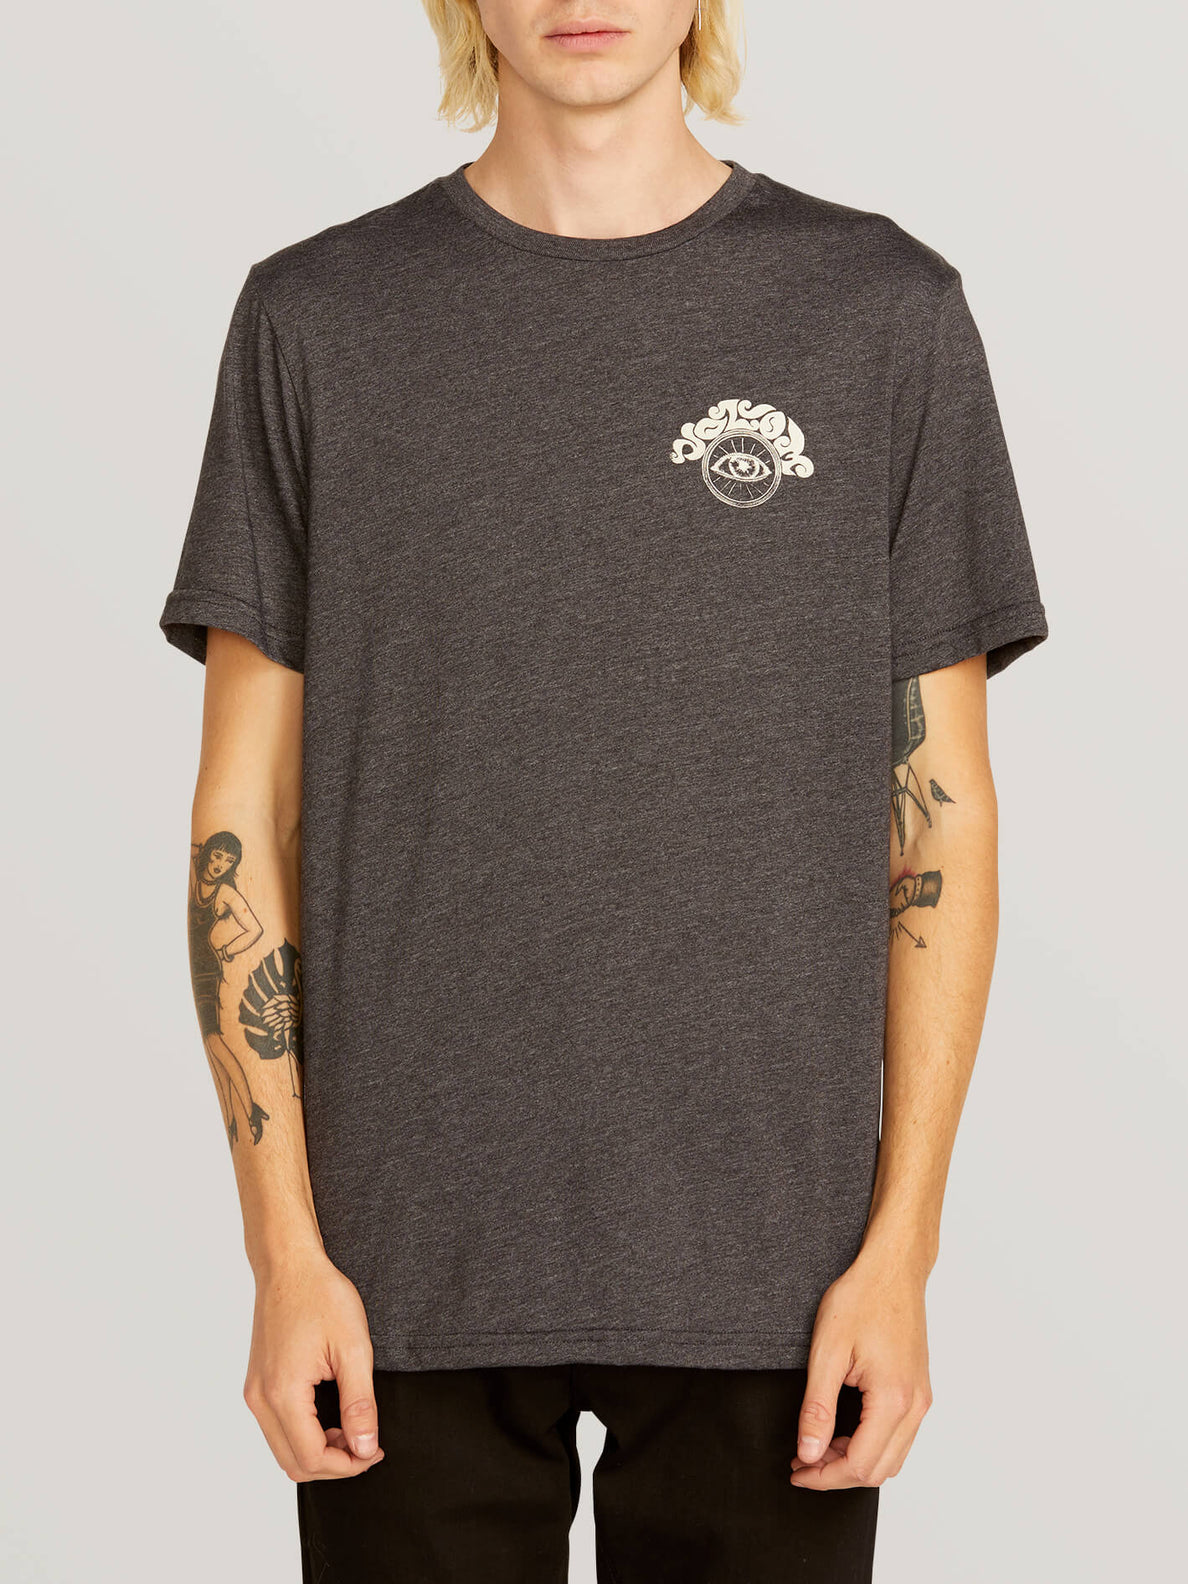 Sunshine Eye Short Sleeve Tee In Heather Black, Front View